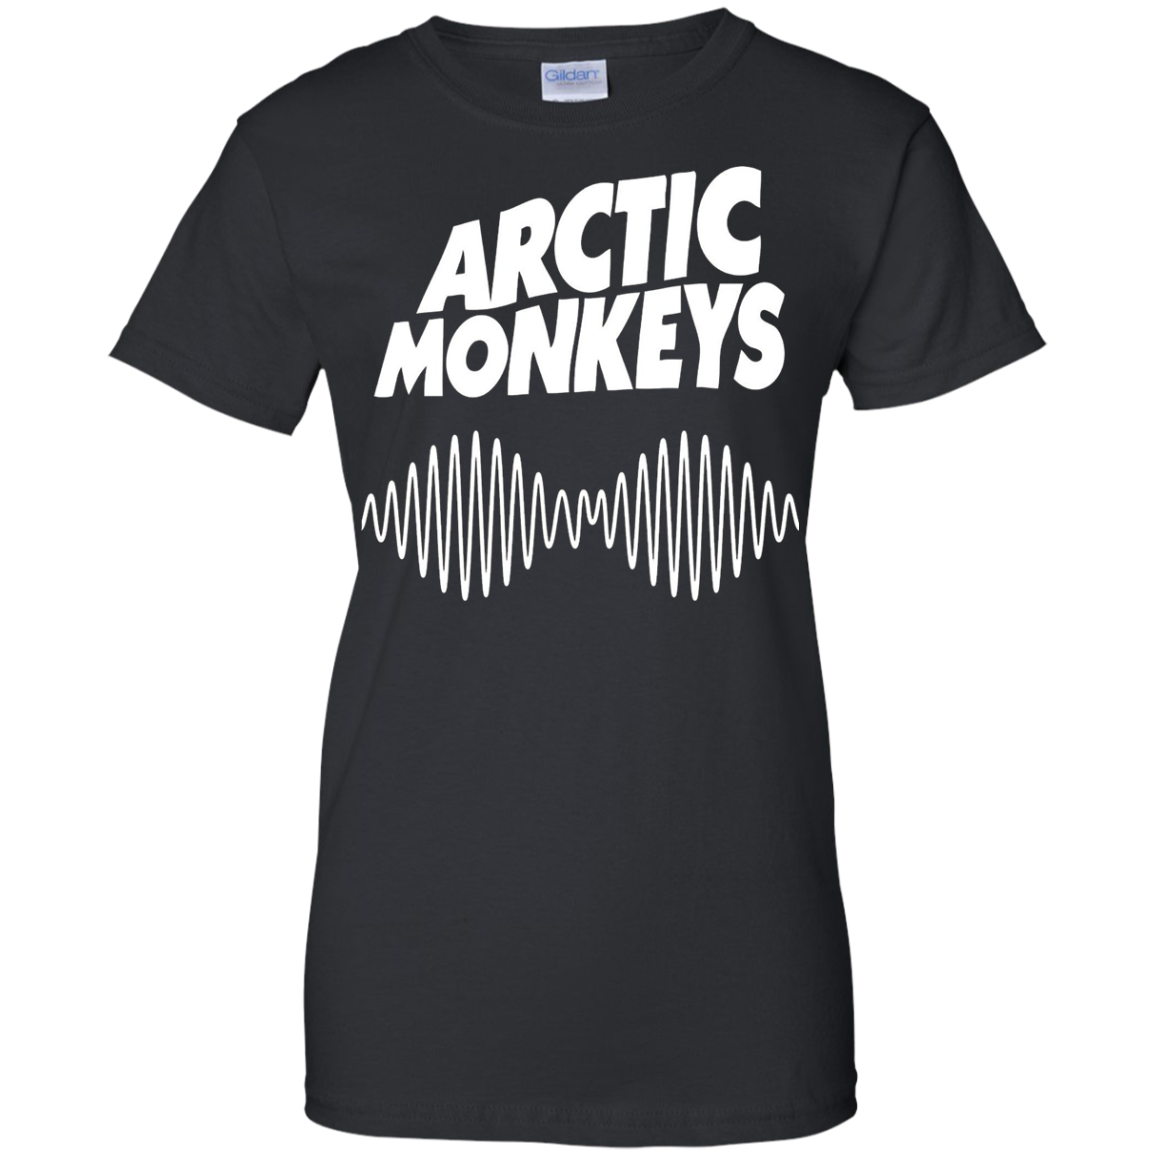 Artic Monkeys Soundwave Music Band Tshirt